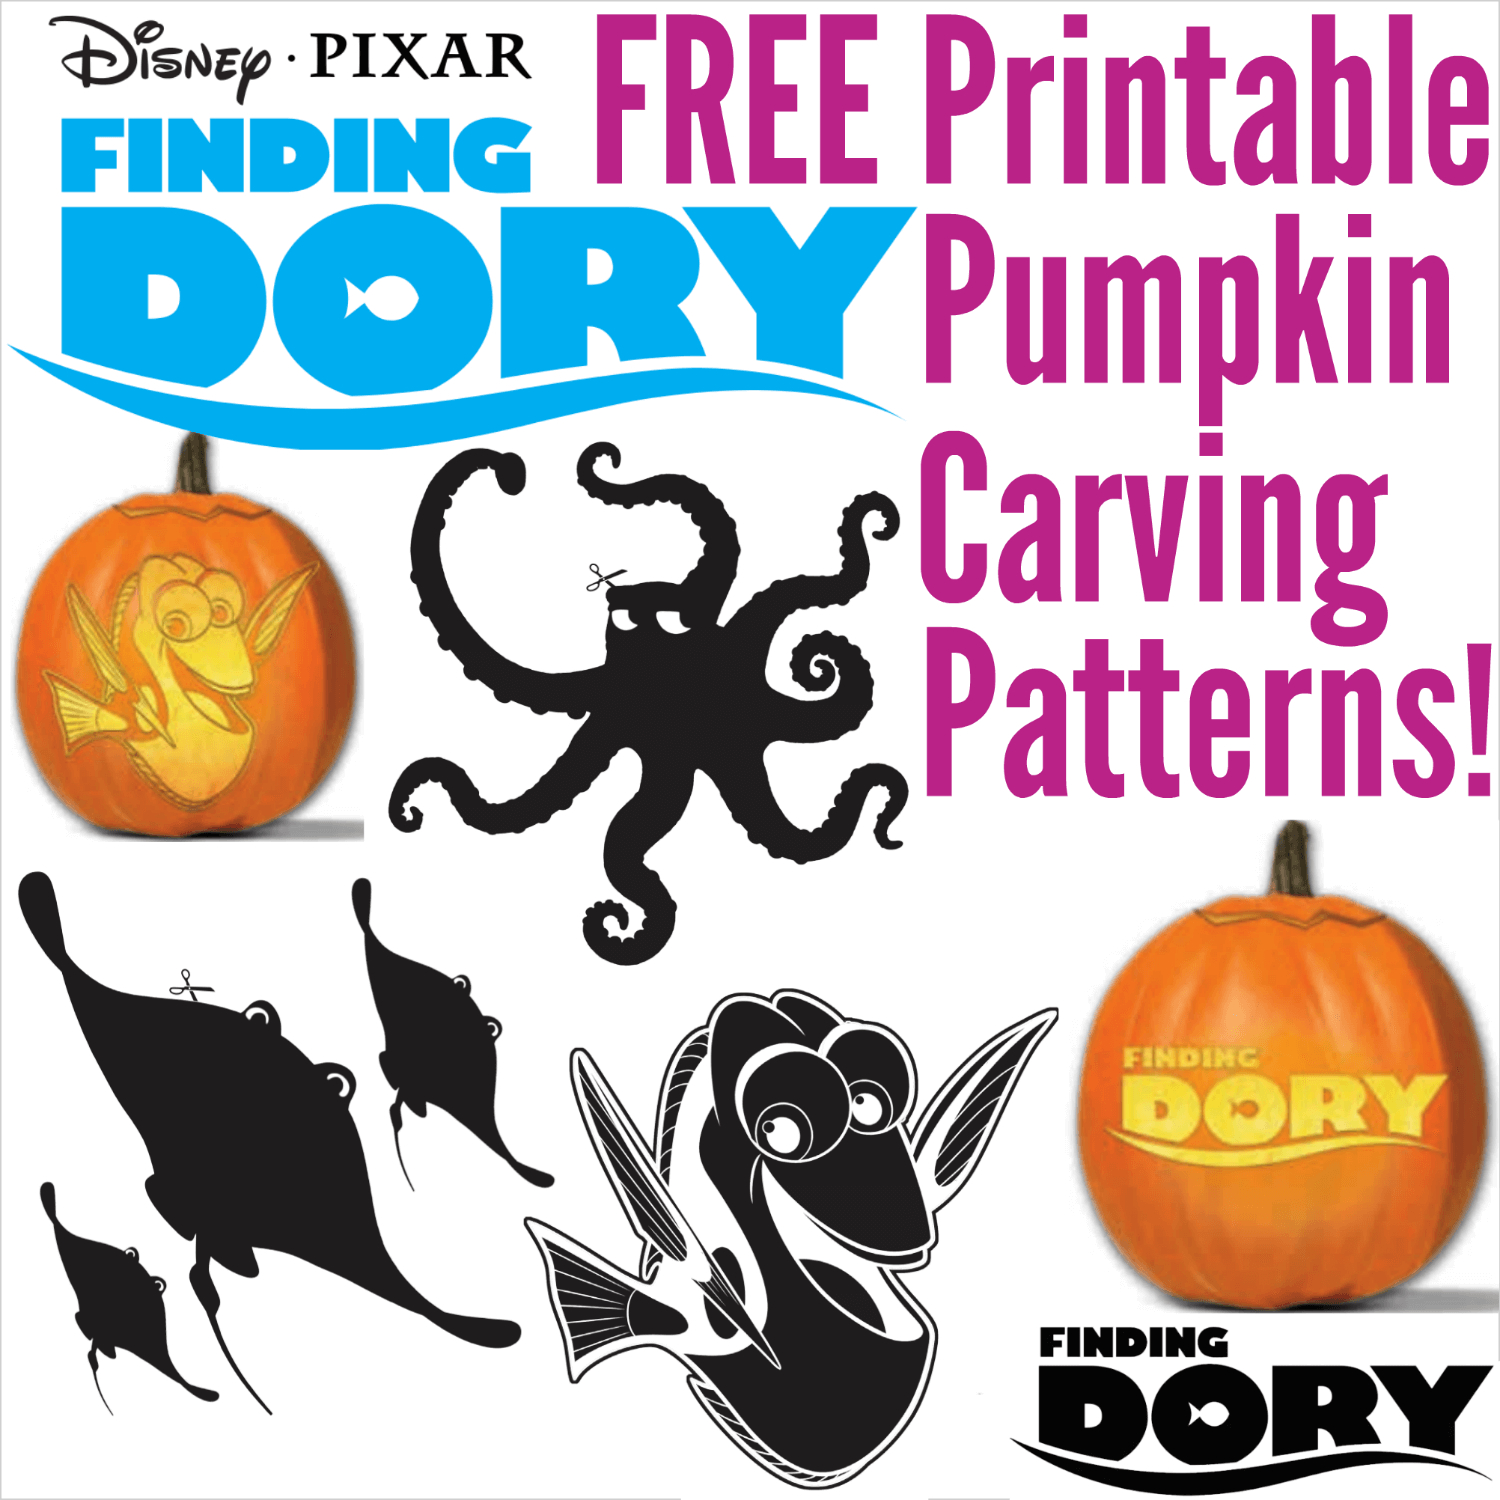 Free Finding Dory Pumpkin Carving Patterns To Print! - Pumpkin Patterns Free Printable